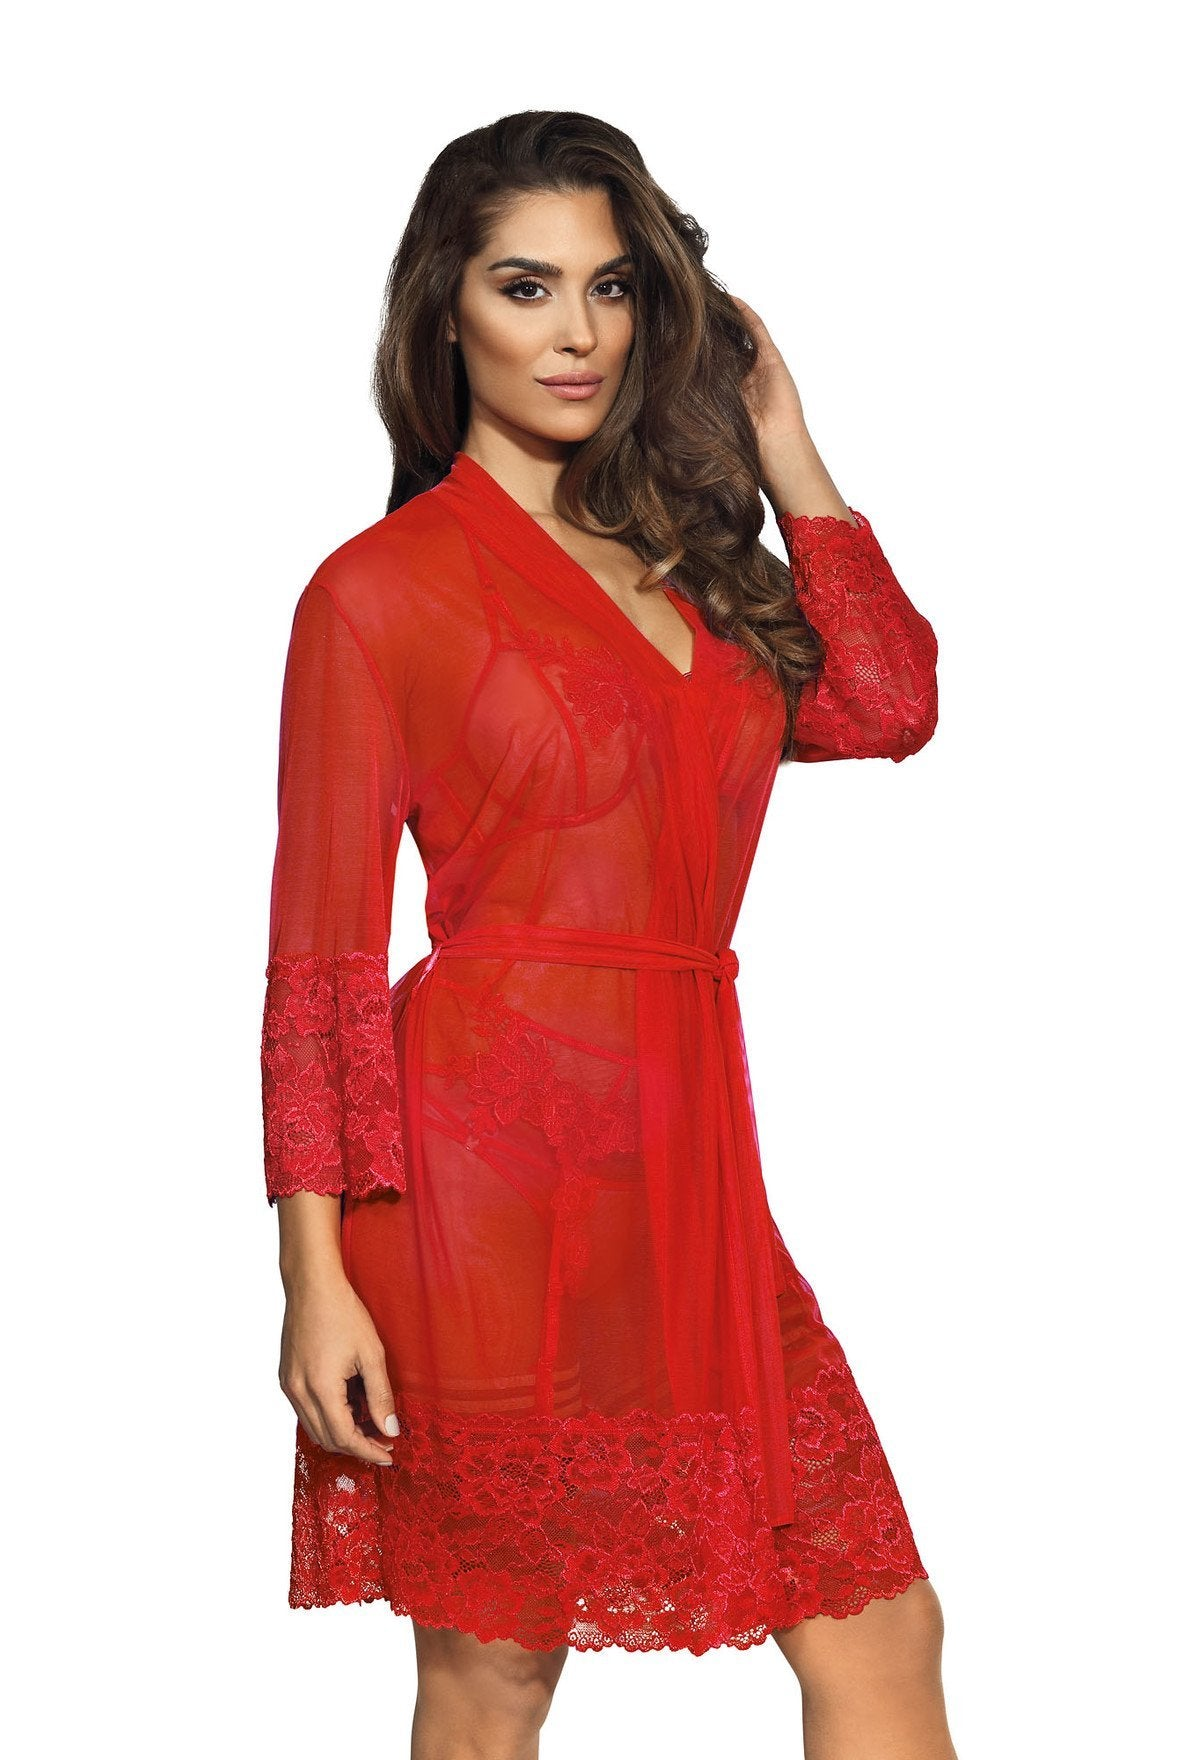 Sheer Red Lace Peignoir